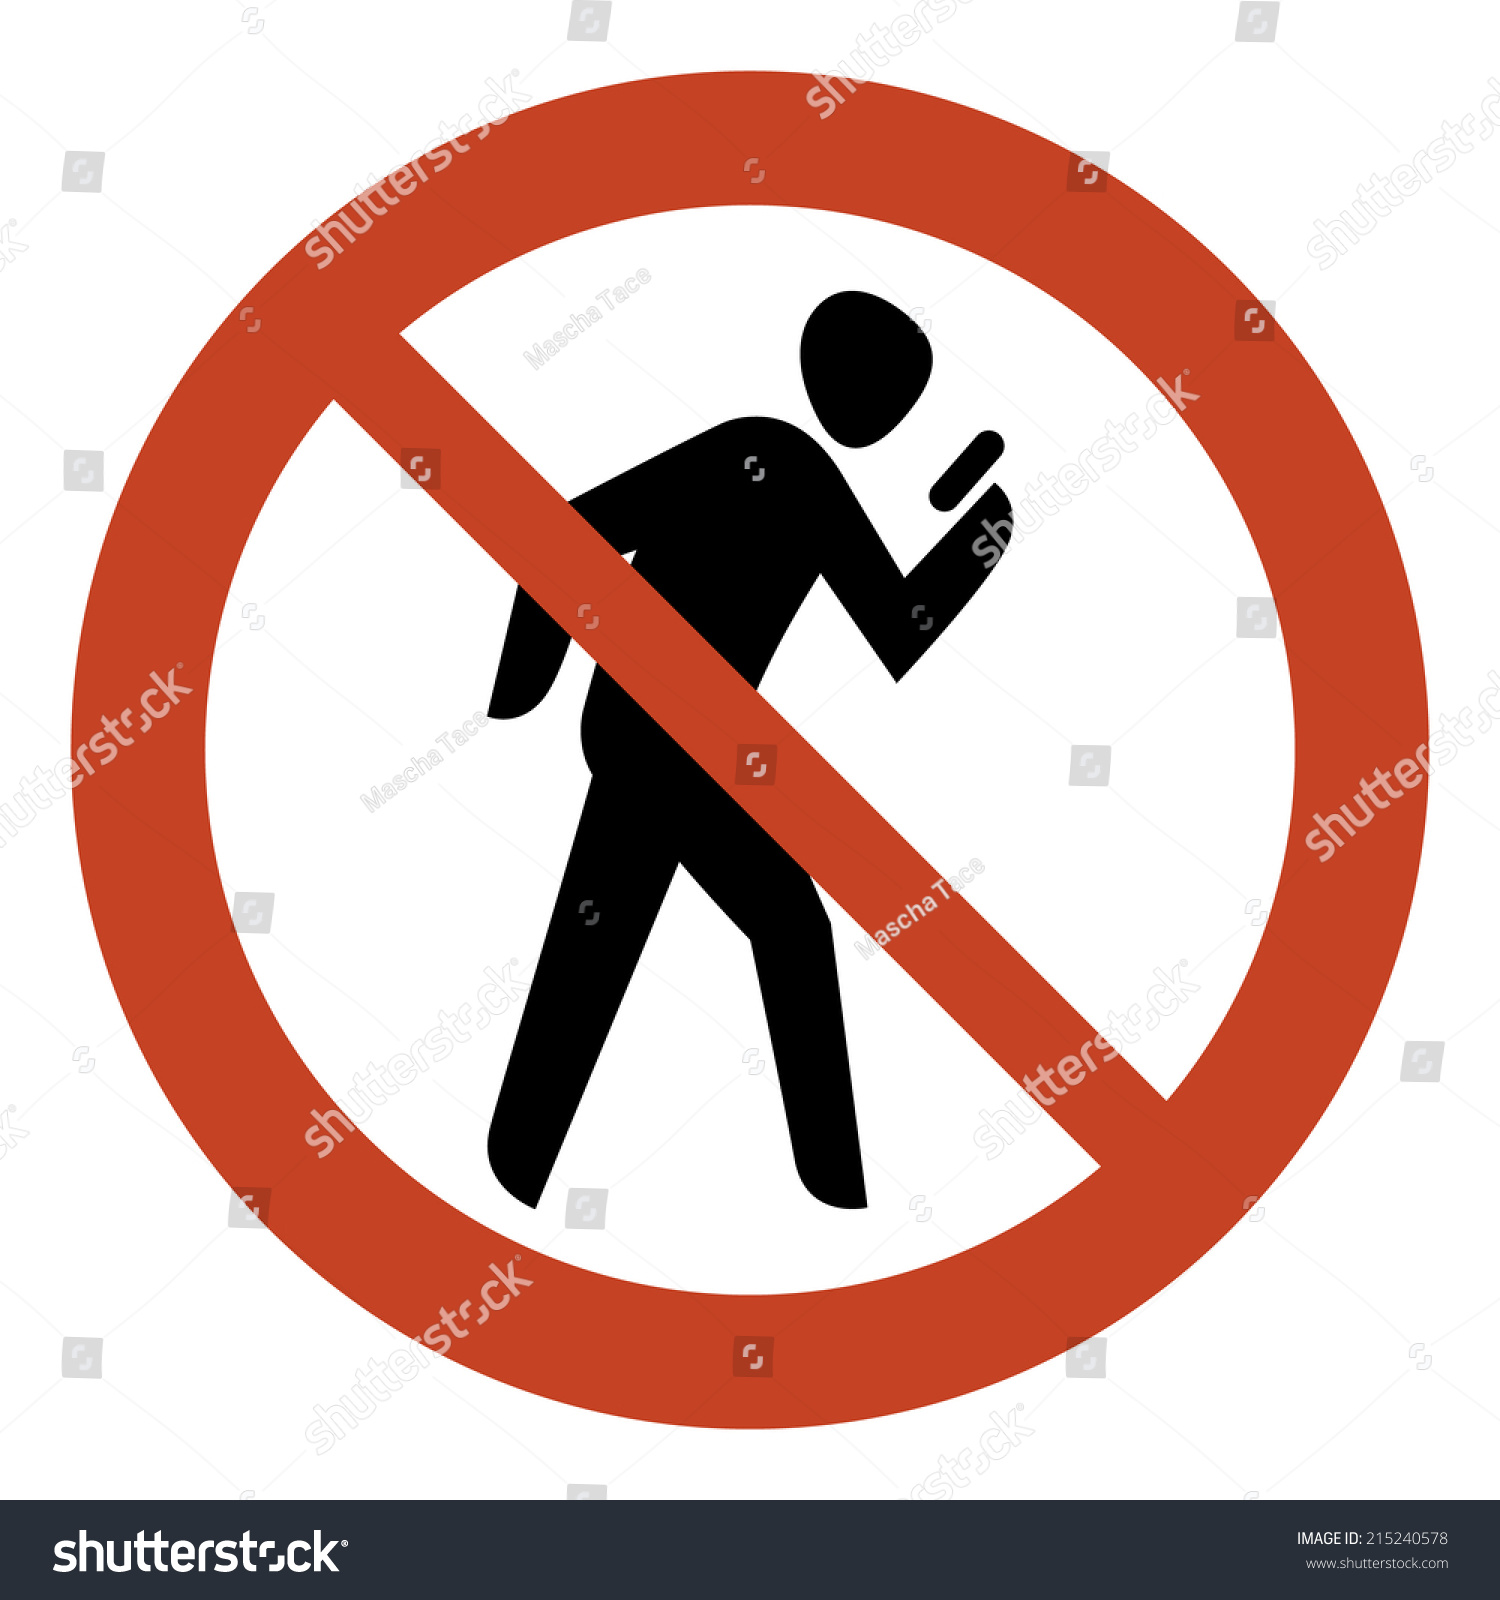 No Texting While Walking Round Sign Stock Vector